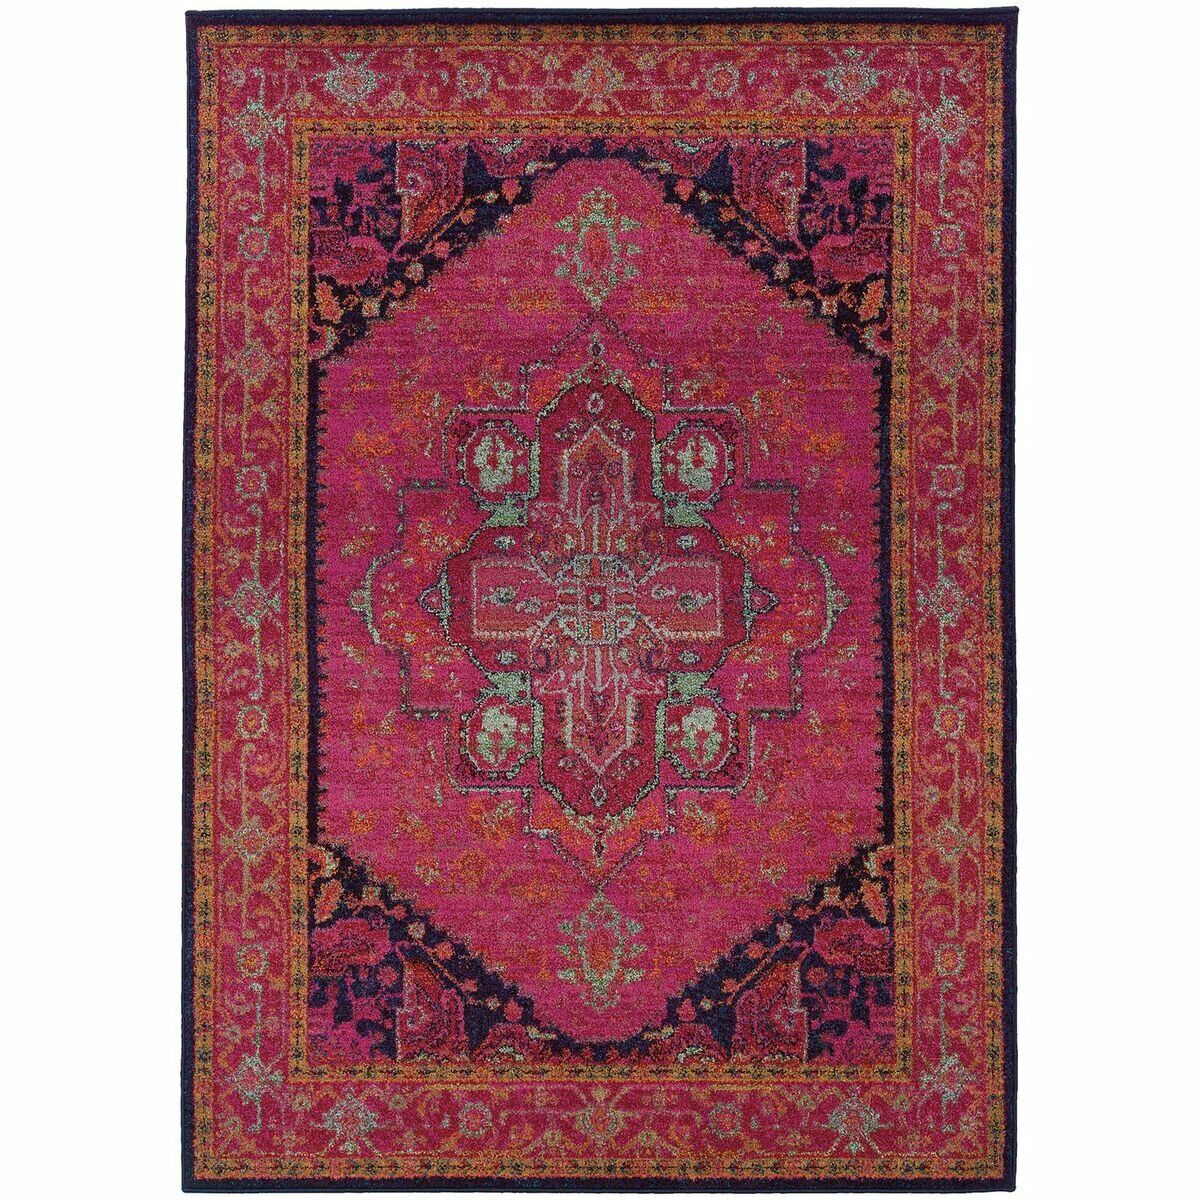 the conestoga trading co aura updated traditional pink blue area rug reviews wayfair. Black Bedroom Furniture Sets. Home Design Ideas